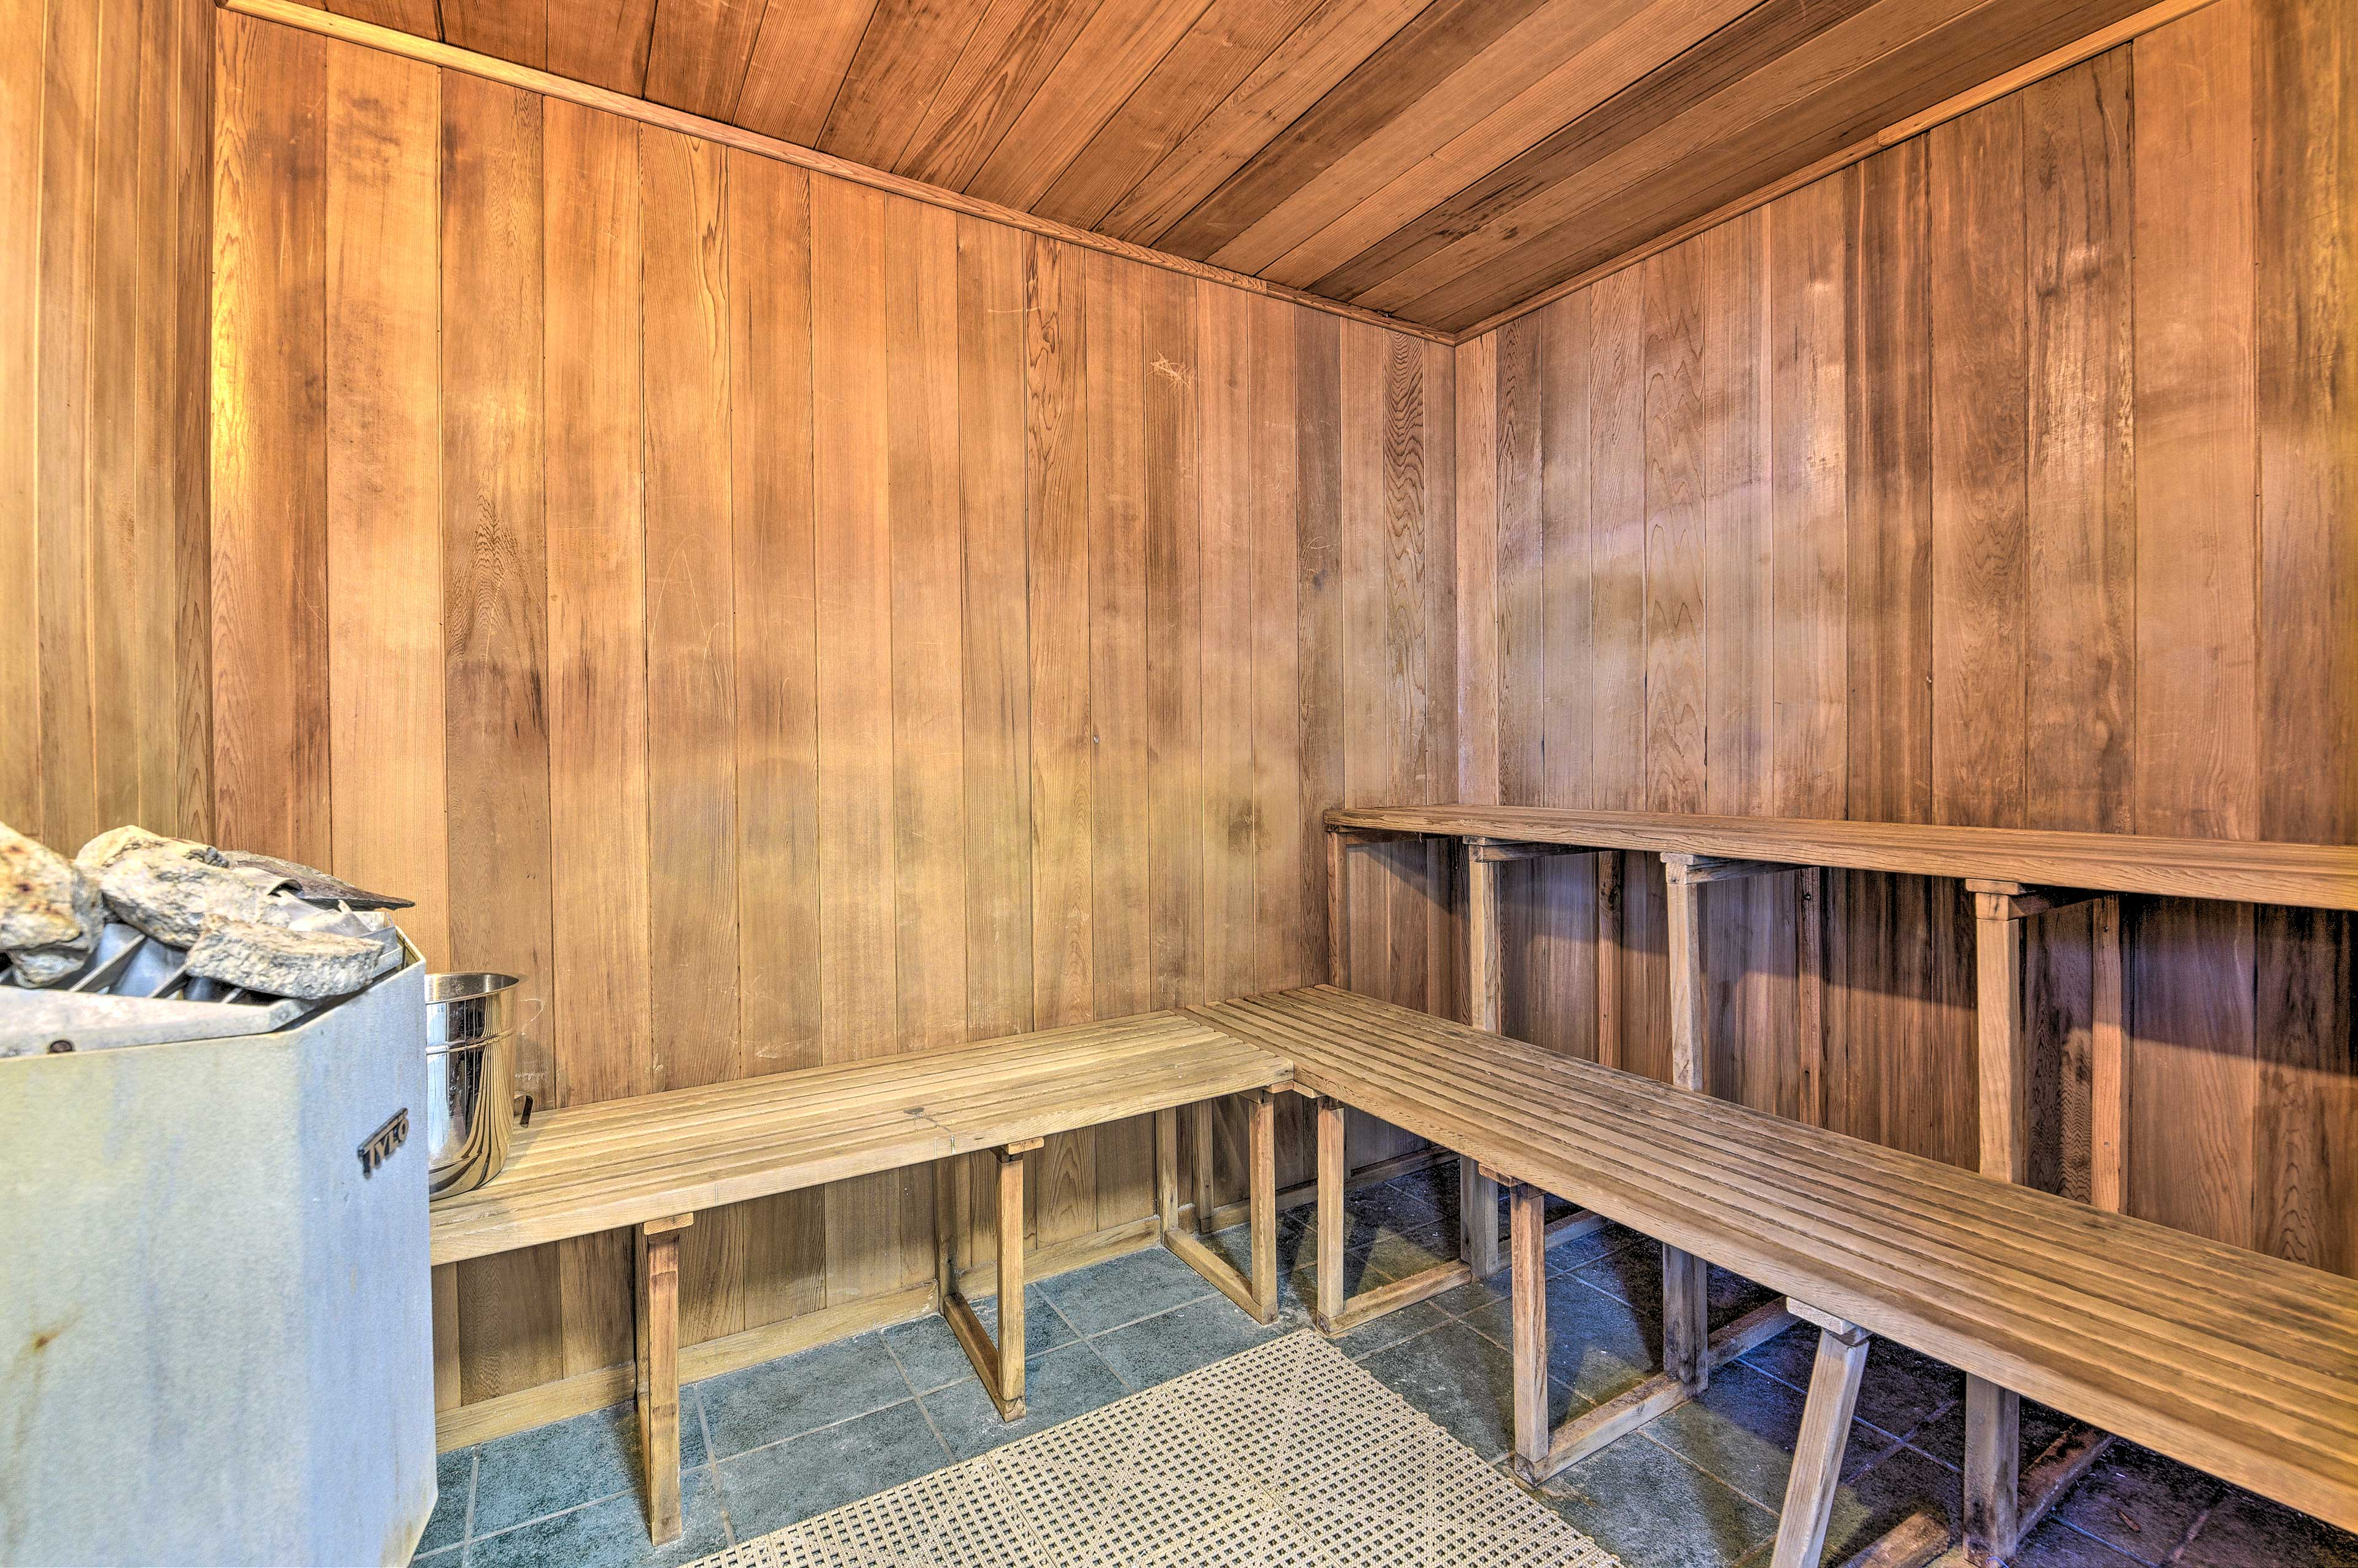 Relax in the sauna after a good workout or just as an addition to the day.